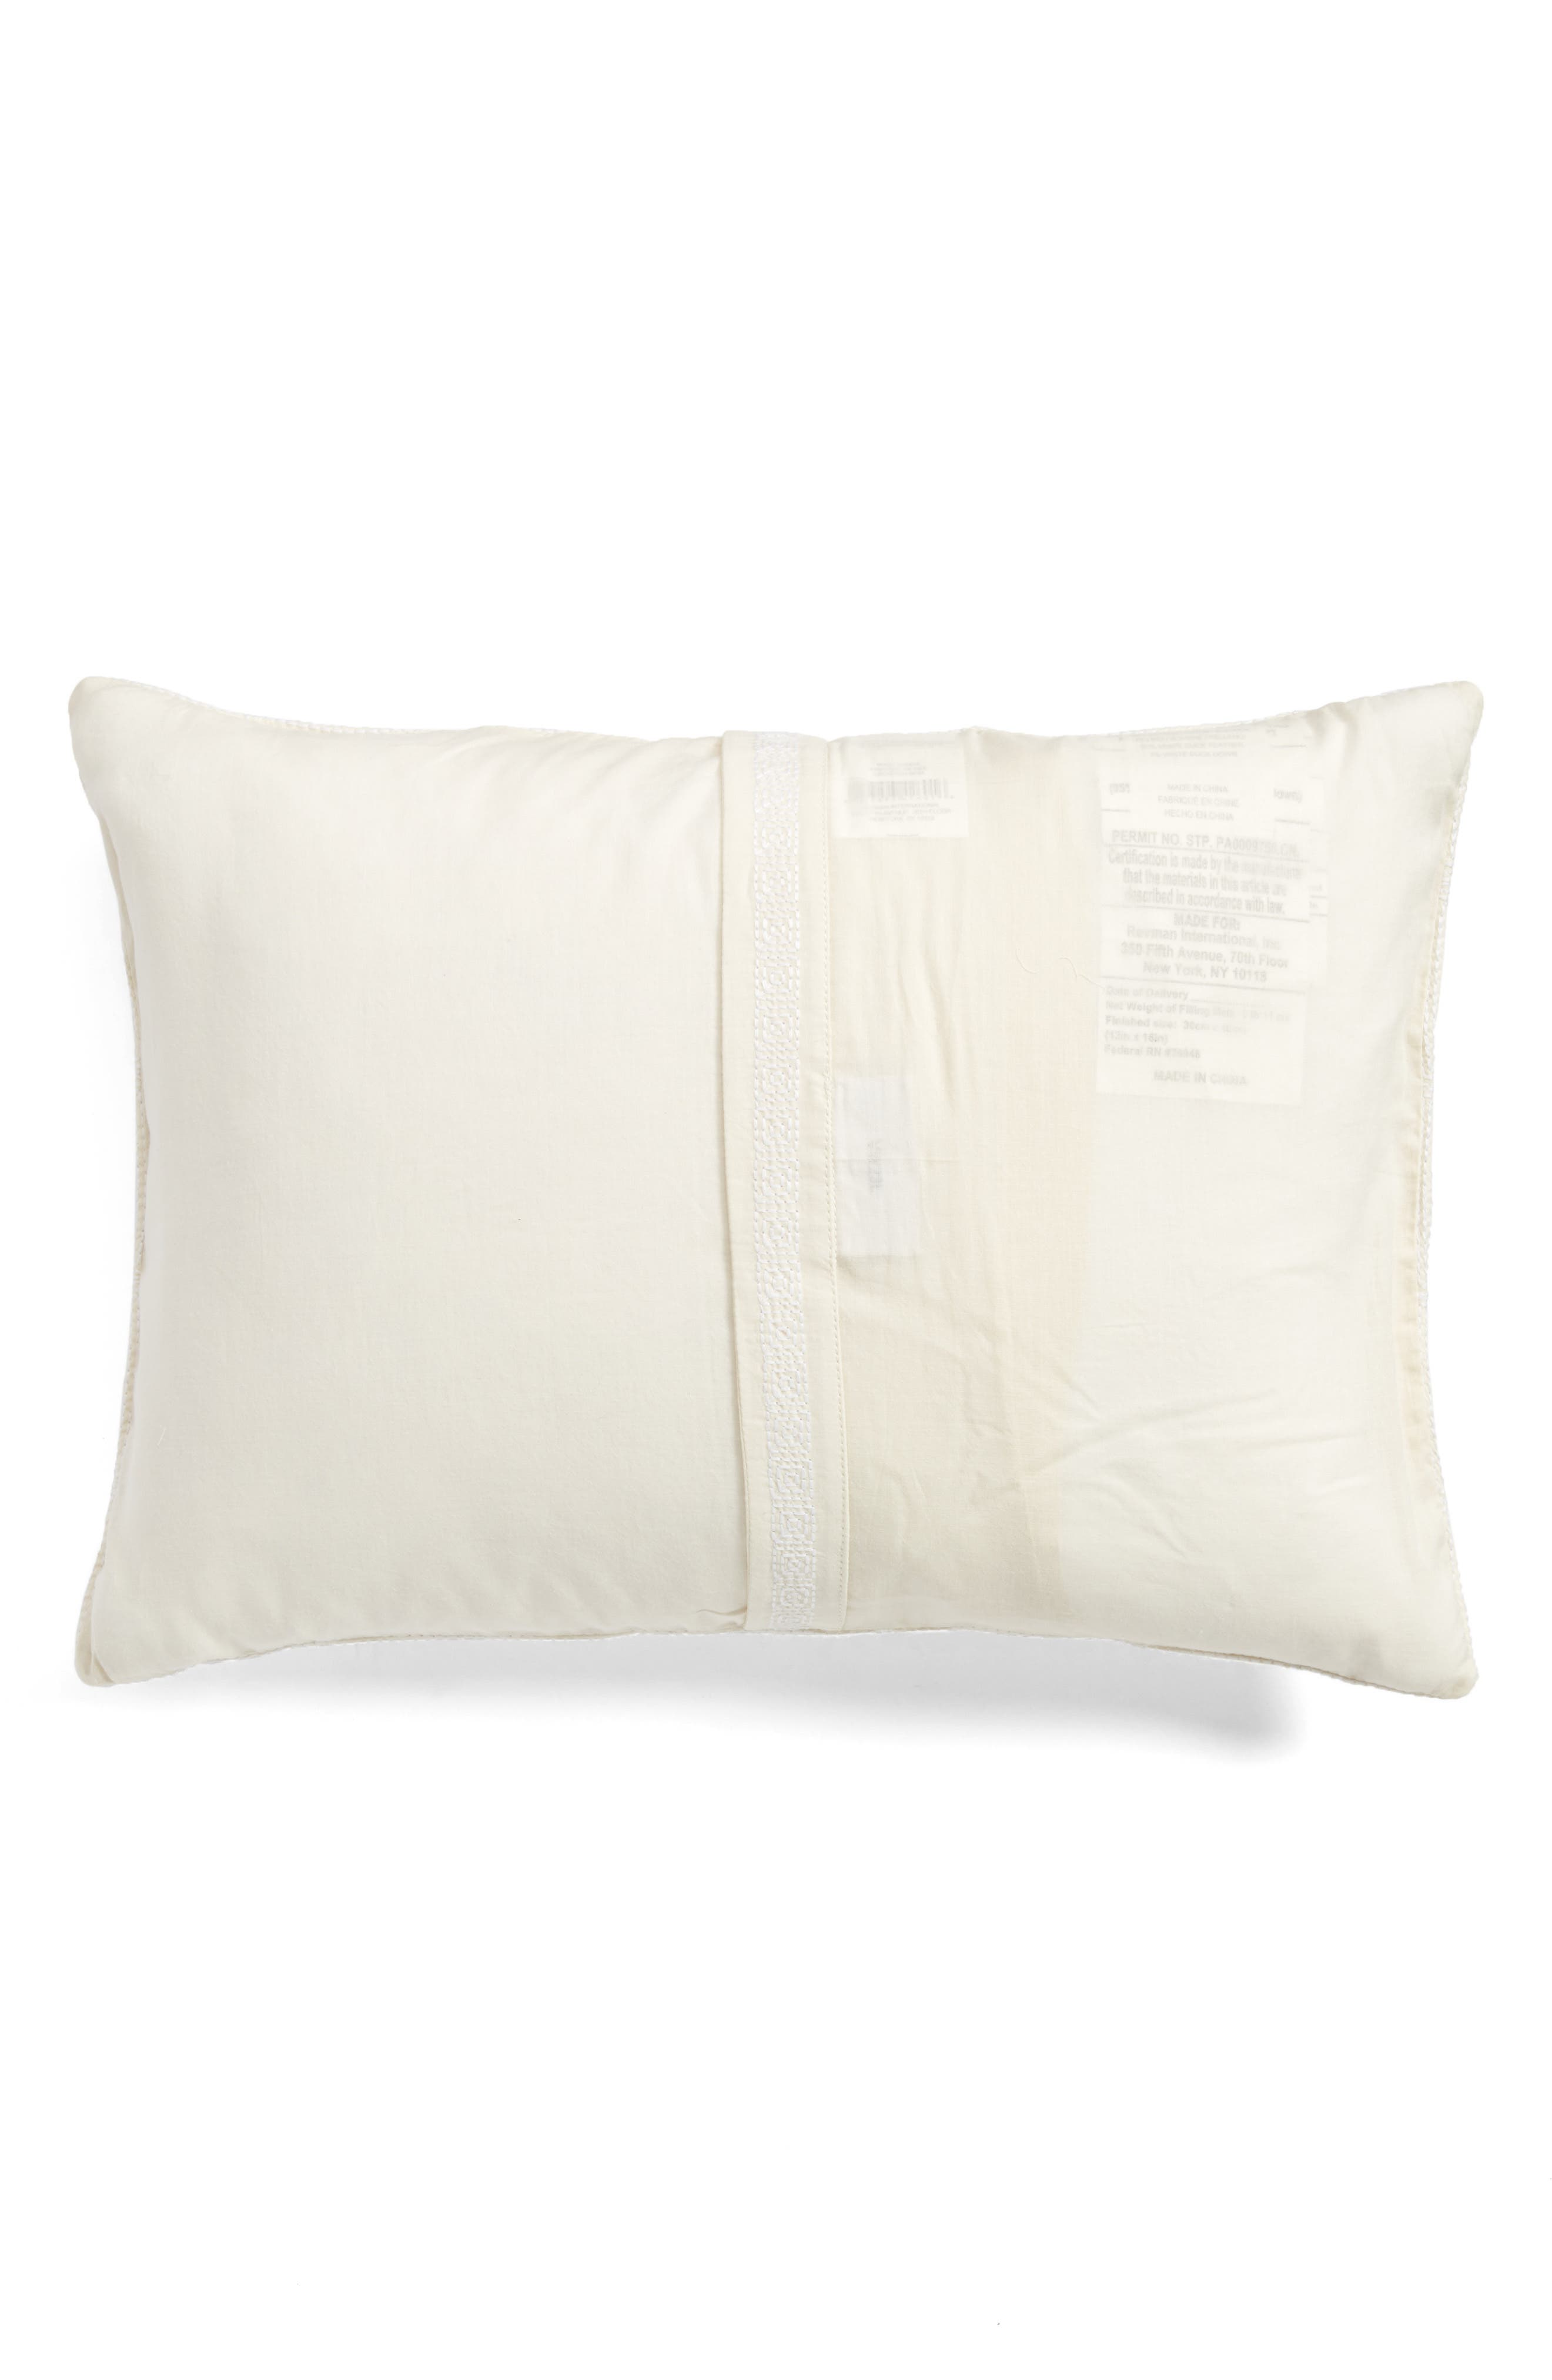 Fretwork Breakfast Pillow,                             Alternate thumbnail 2, color,                             250